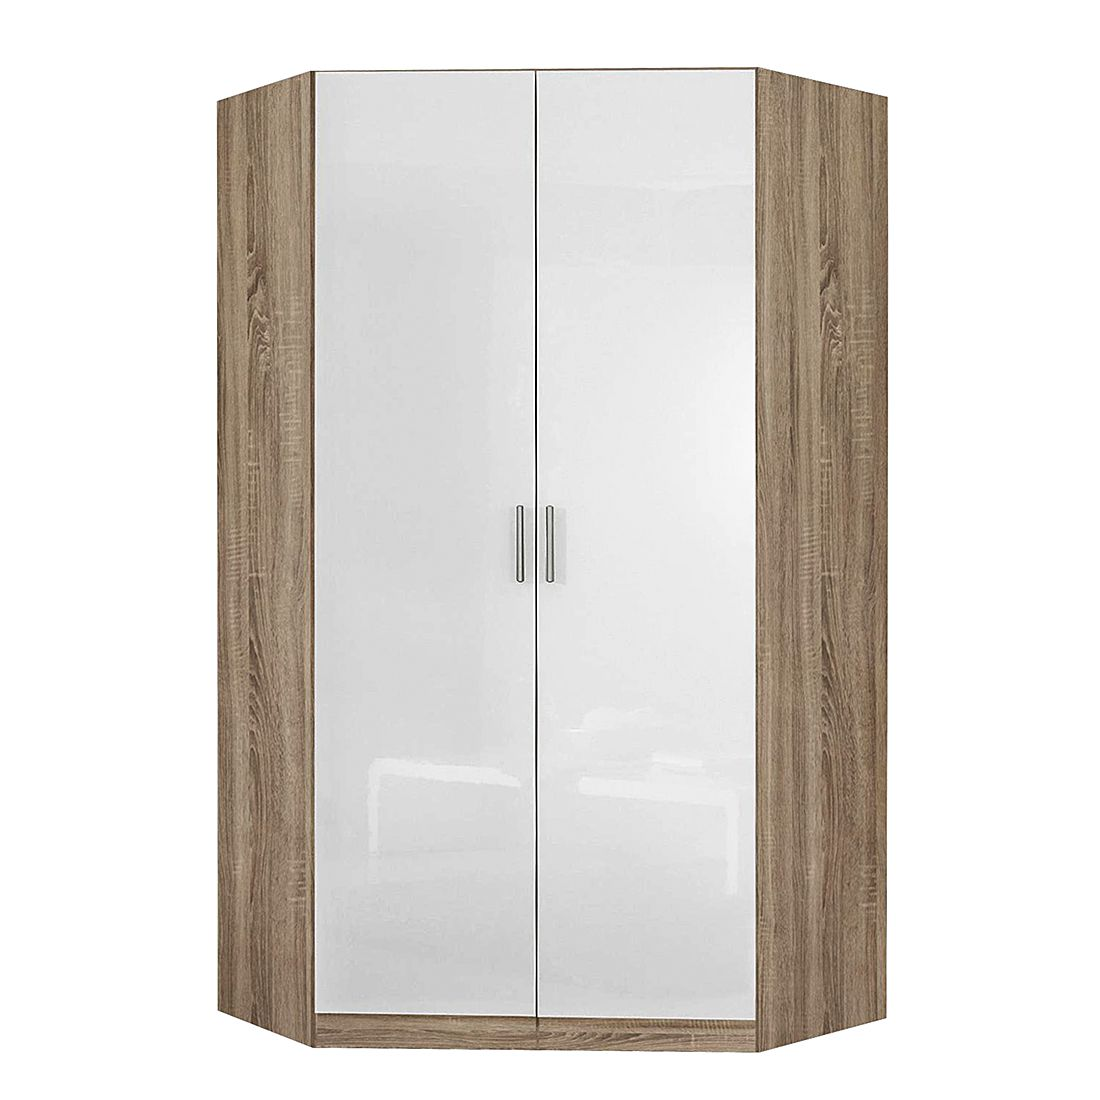 Armoire d'angle Celle - Blanc brillant / Imitation chêne de Sonoma, Rauch Packs